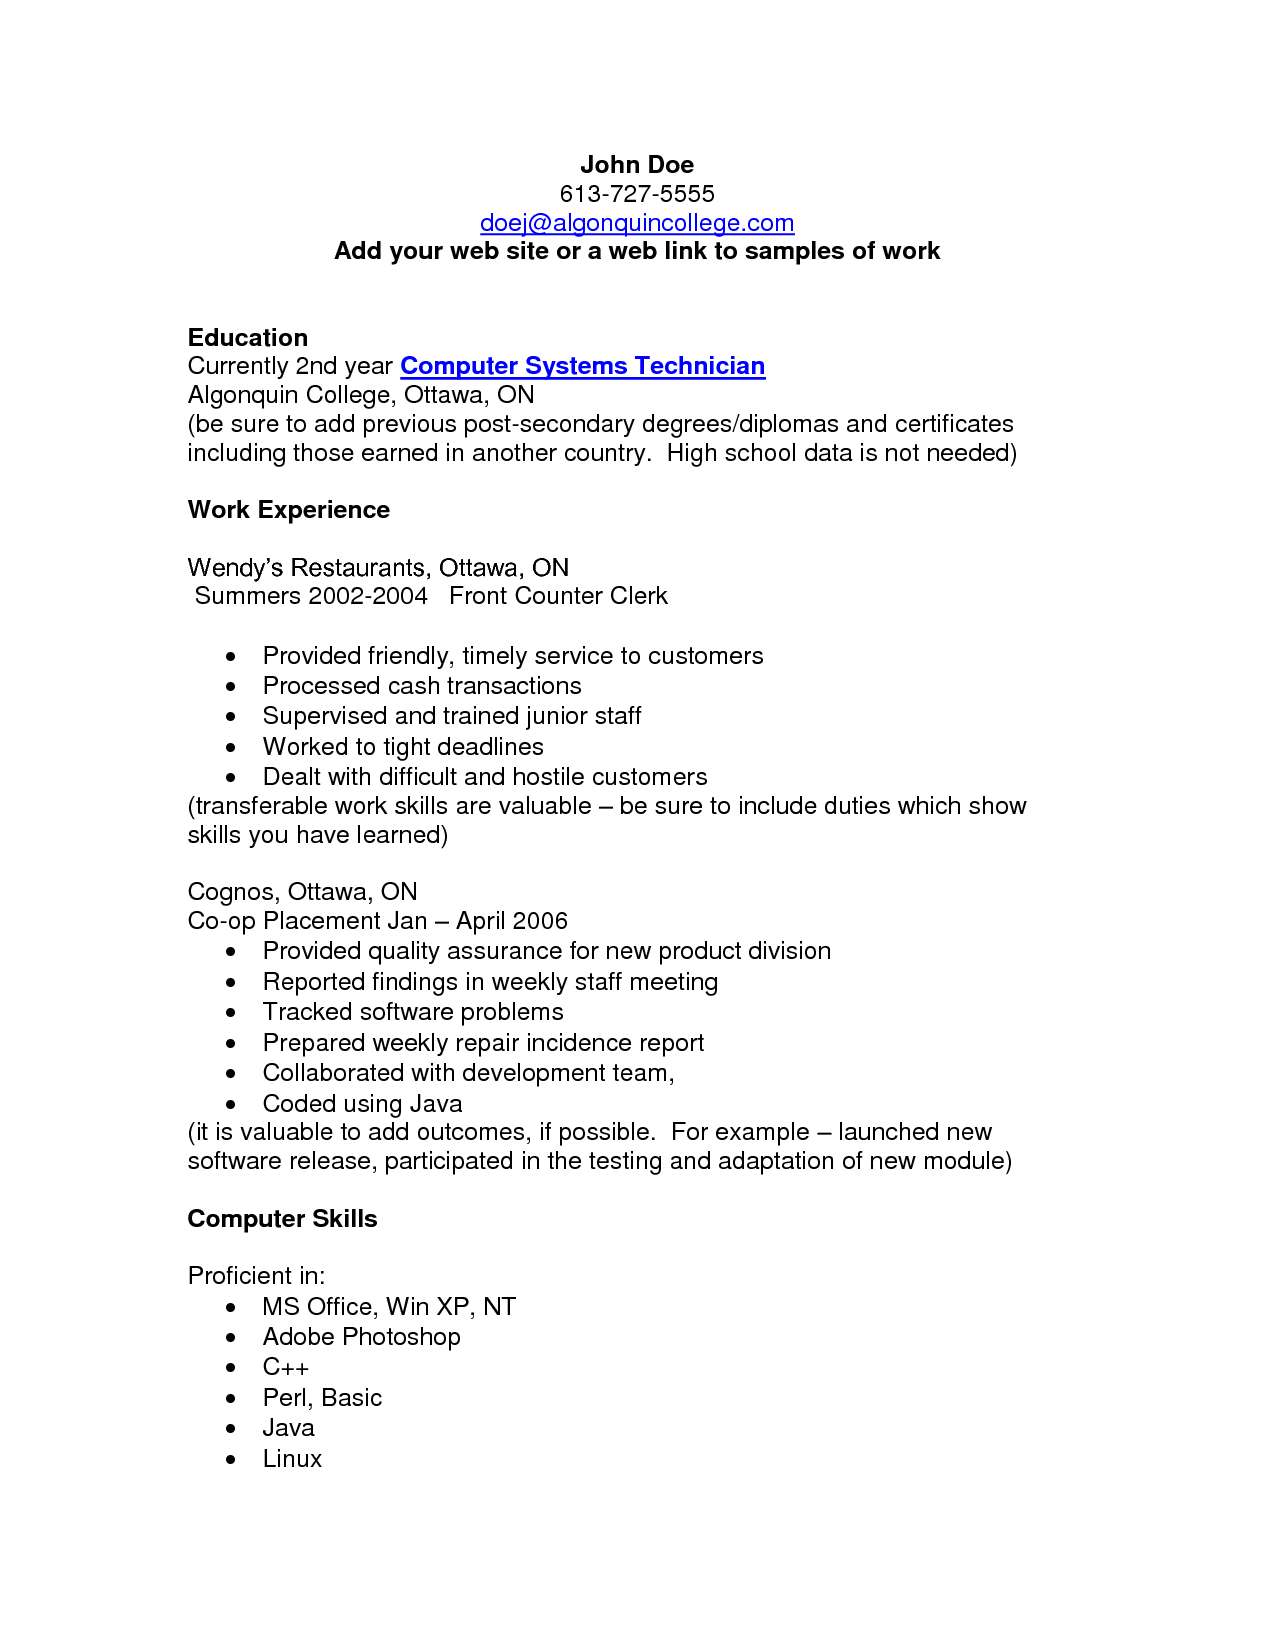 Computer Proficiency Resume Format  HttpWwwResumecareerInfo